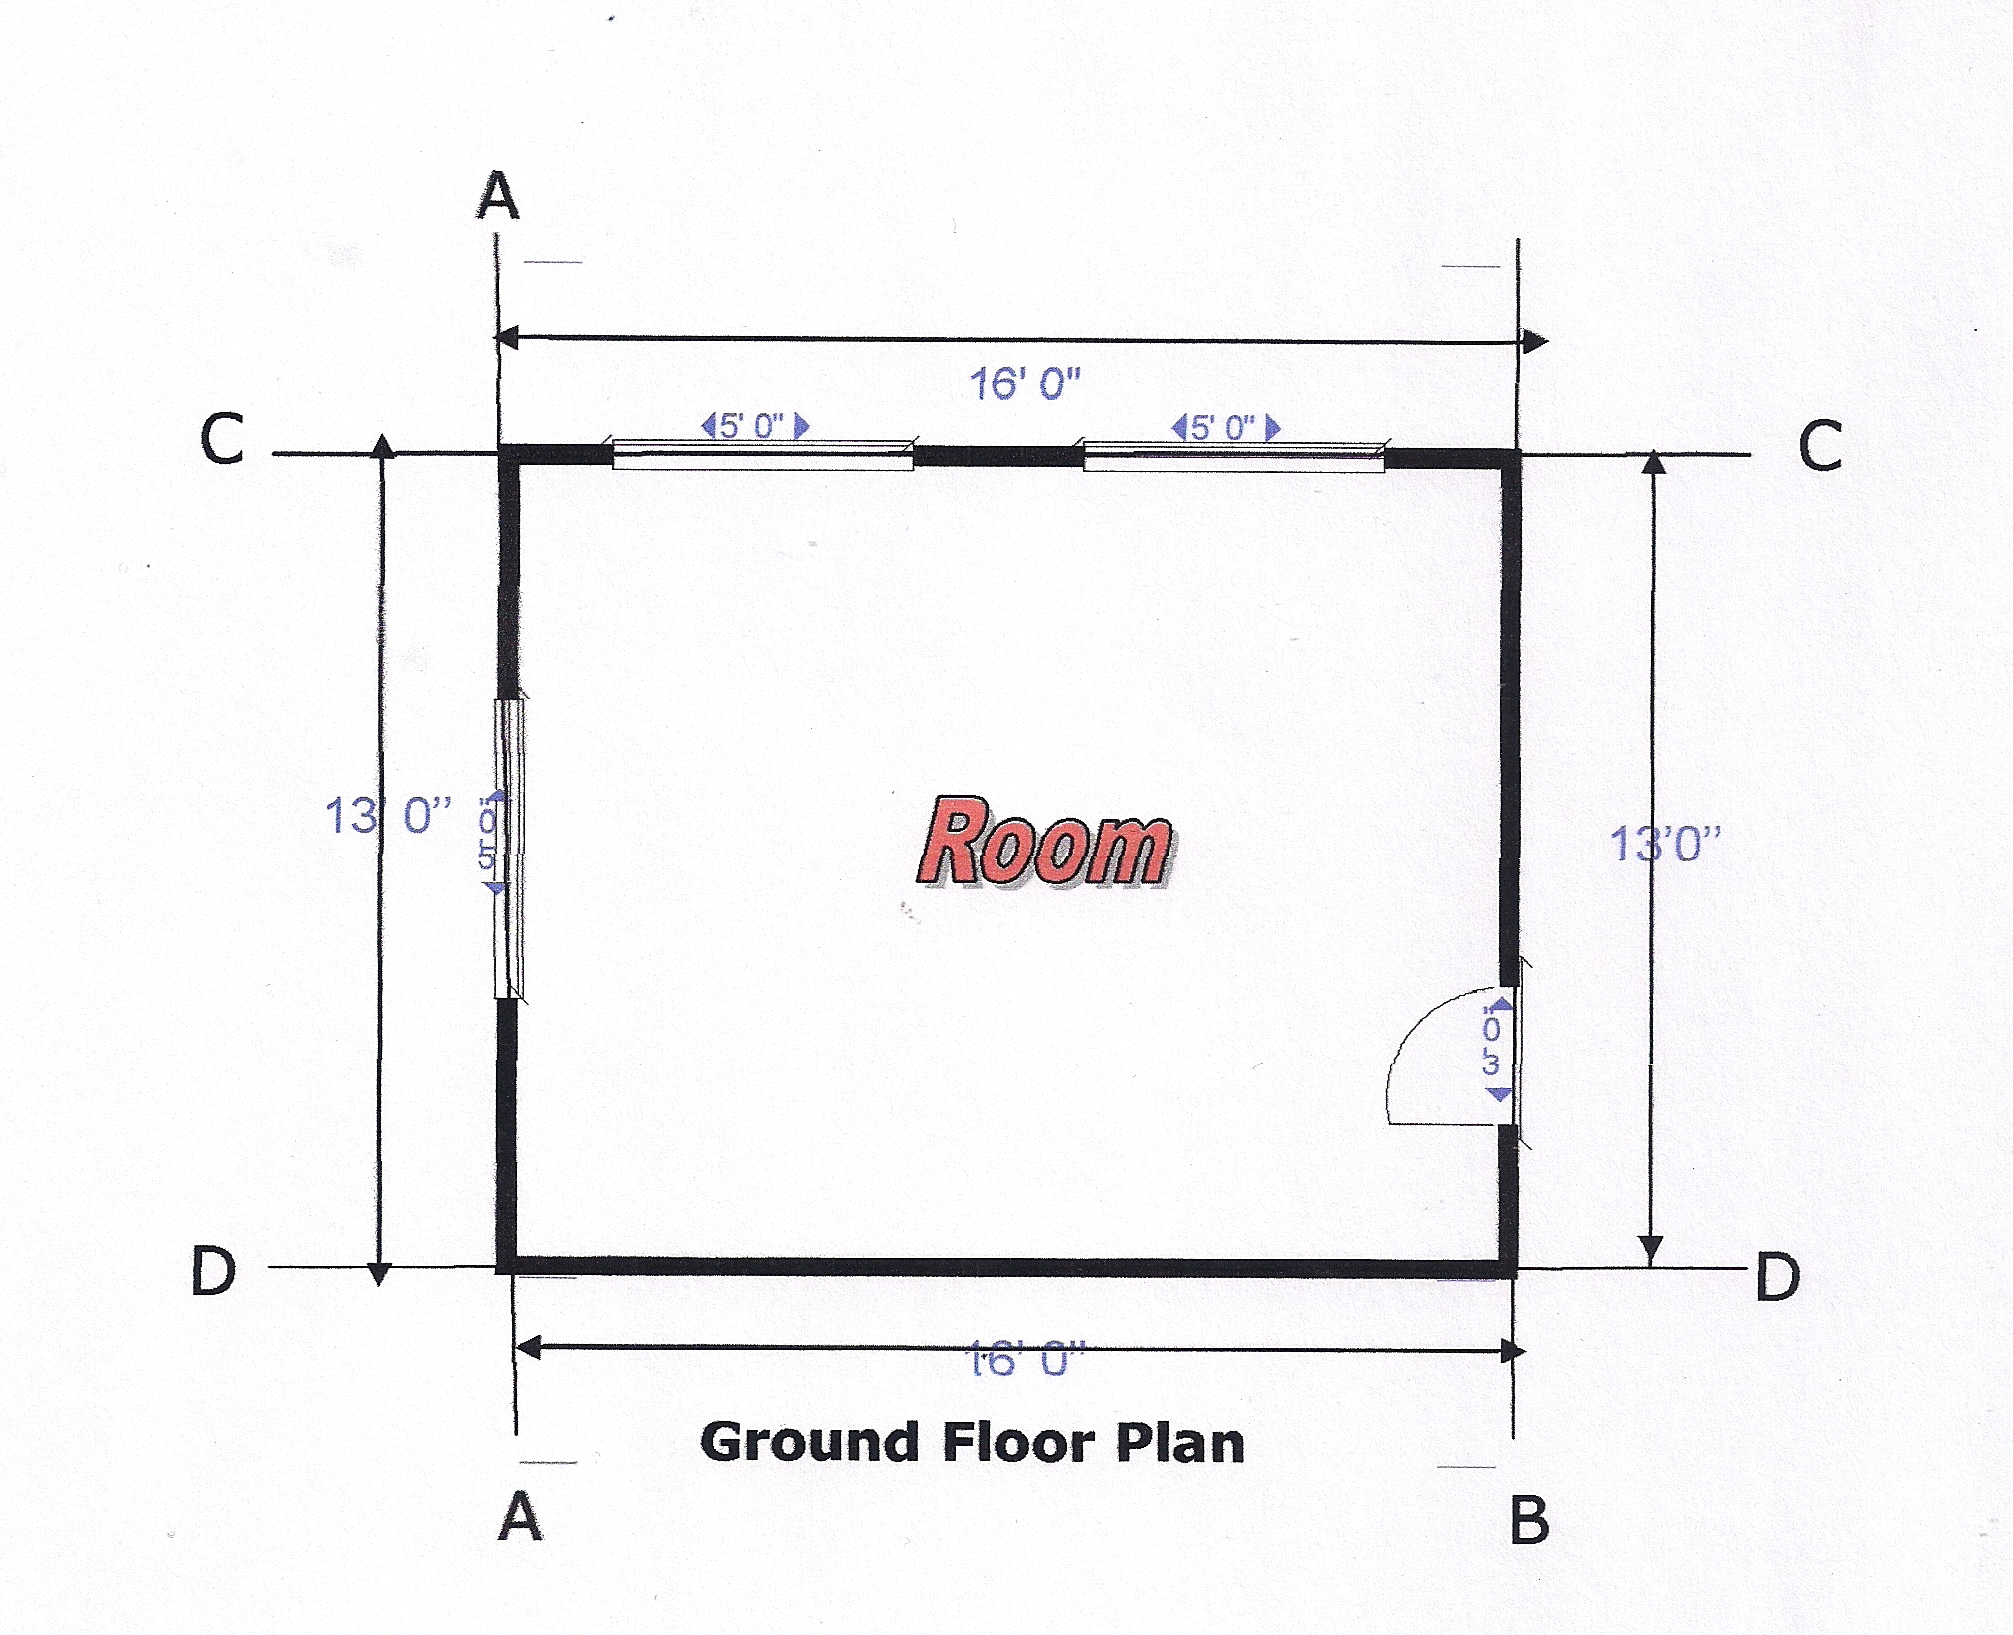 Fig 1 1 ground floor plan of a room